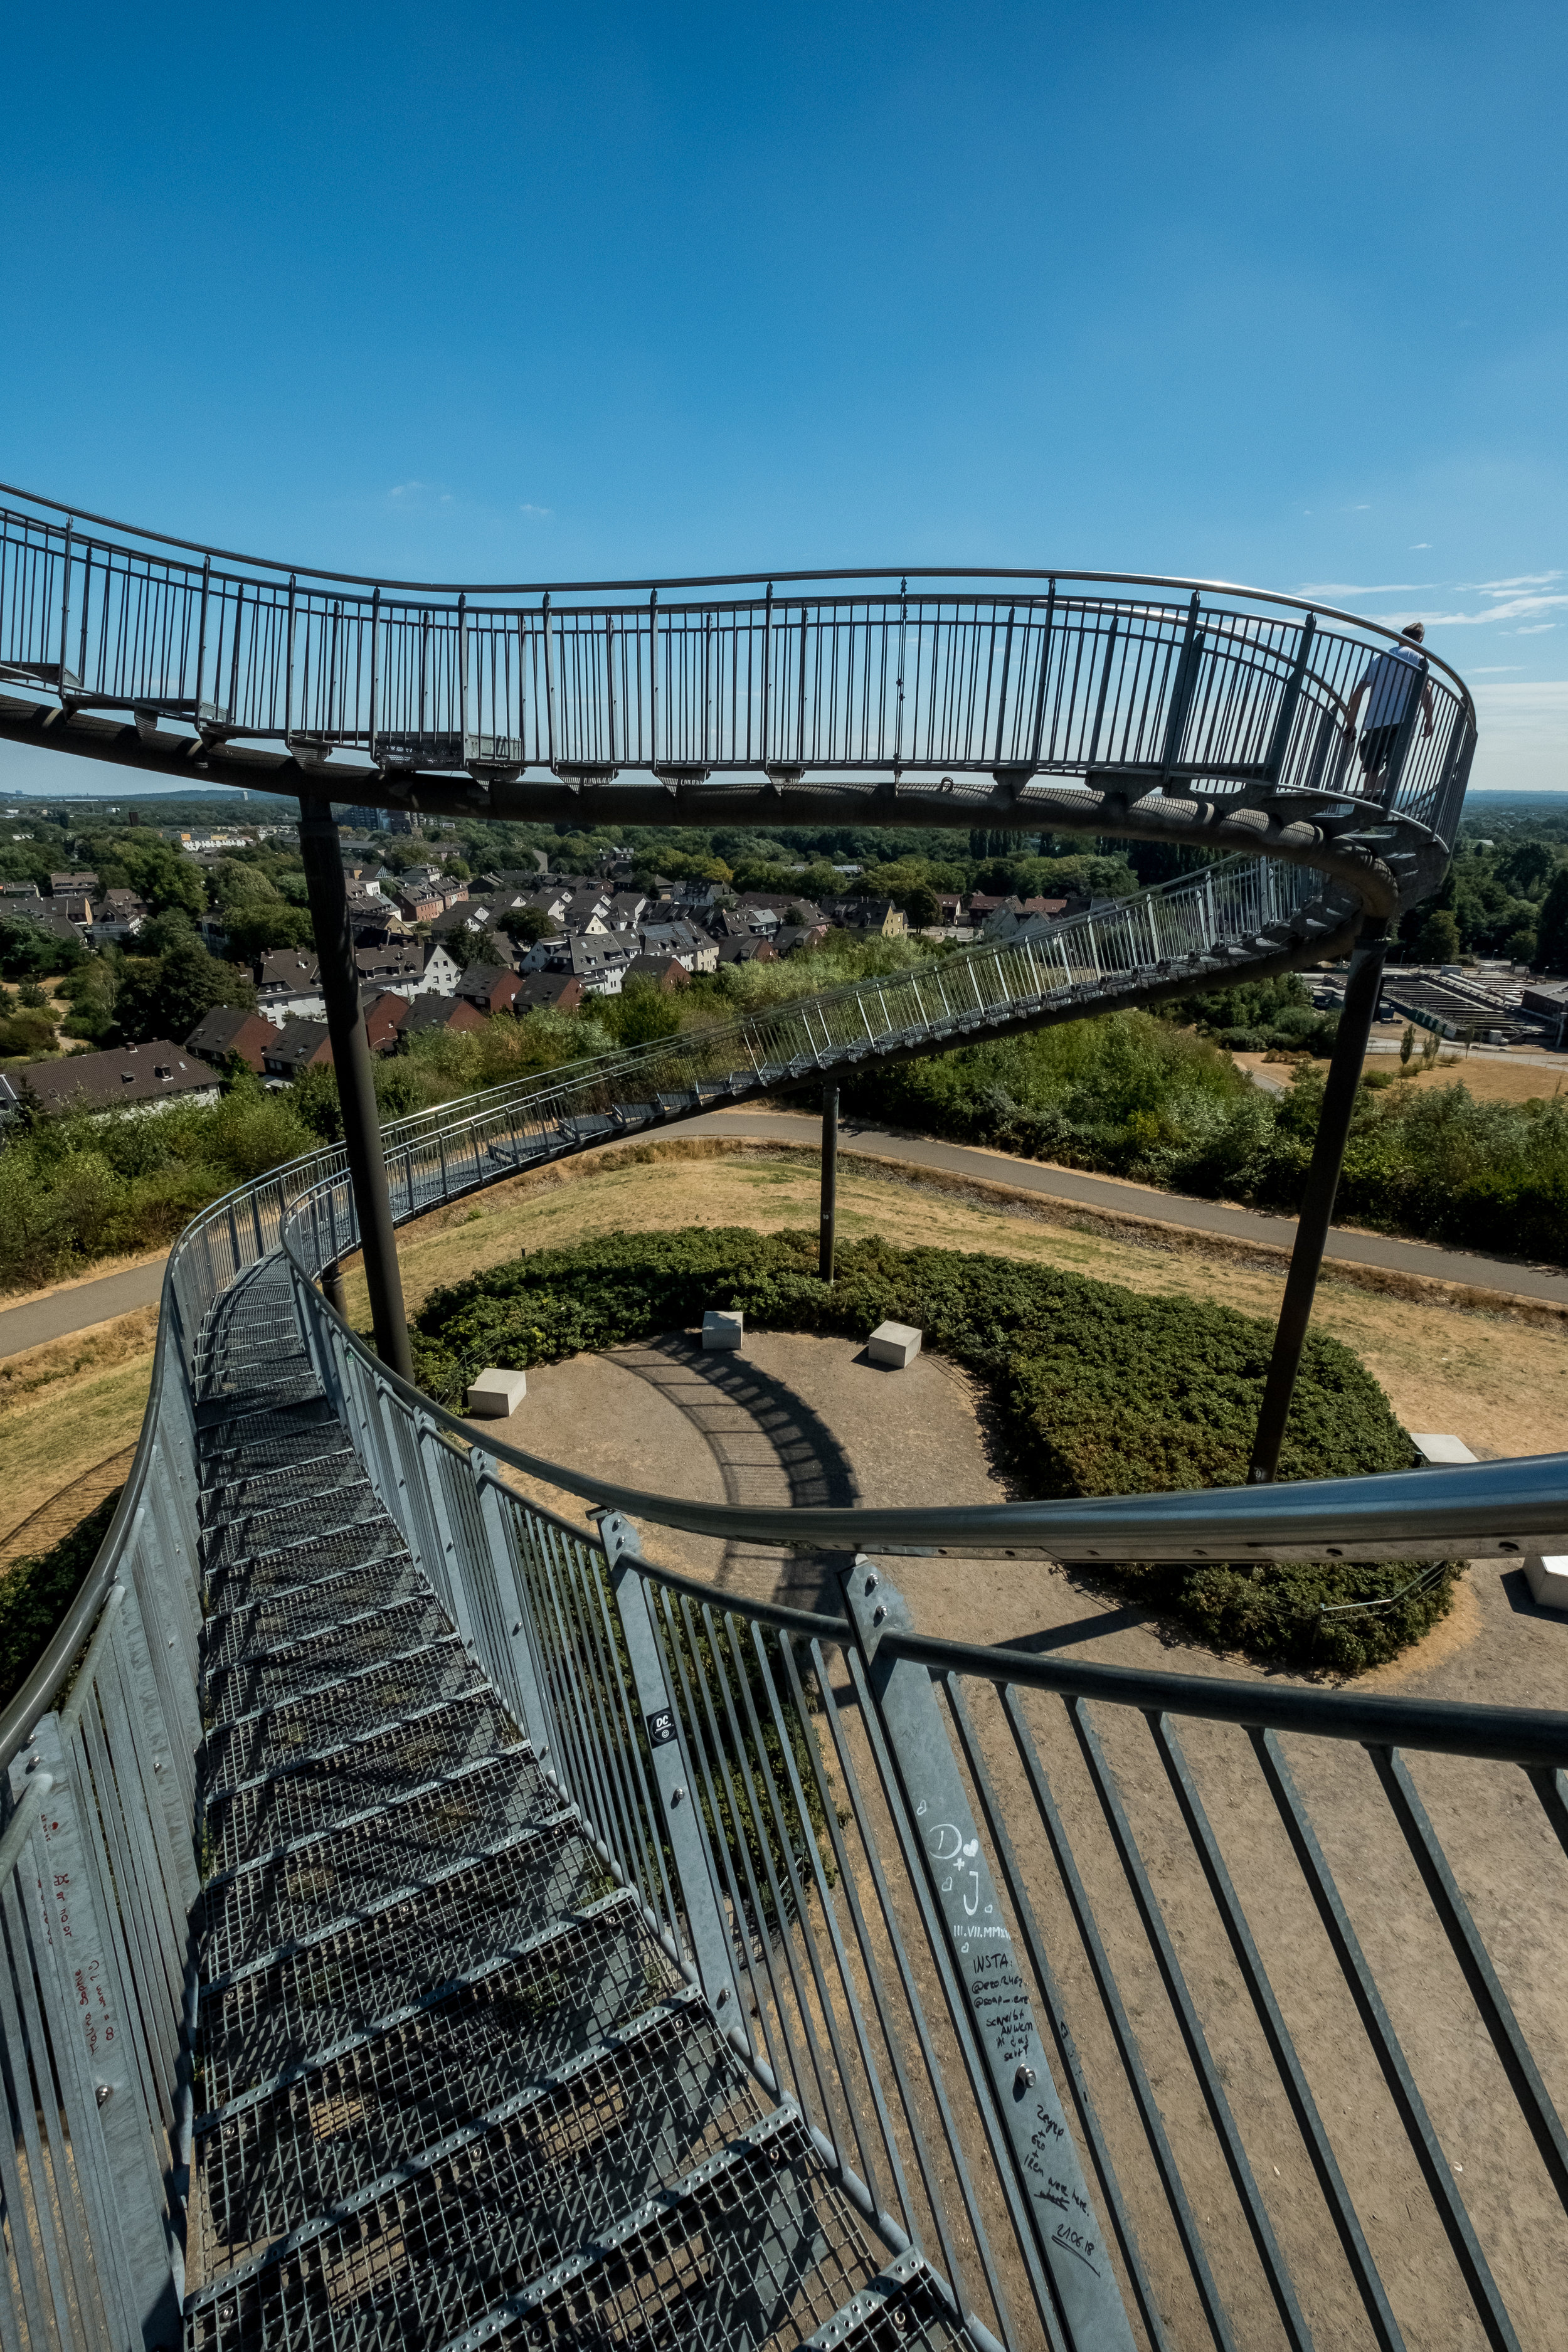 The farthest reaches of the Tiger & Turtle sculpture before meeting in the inaccessible loop